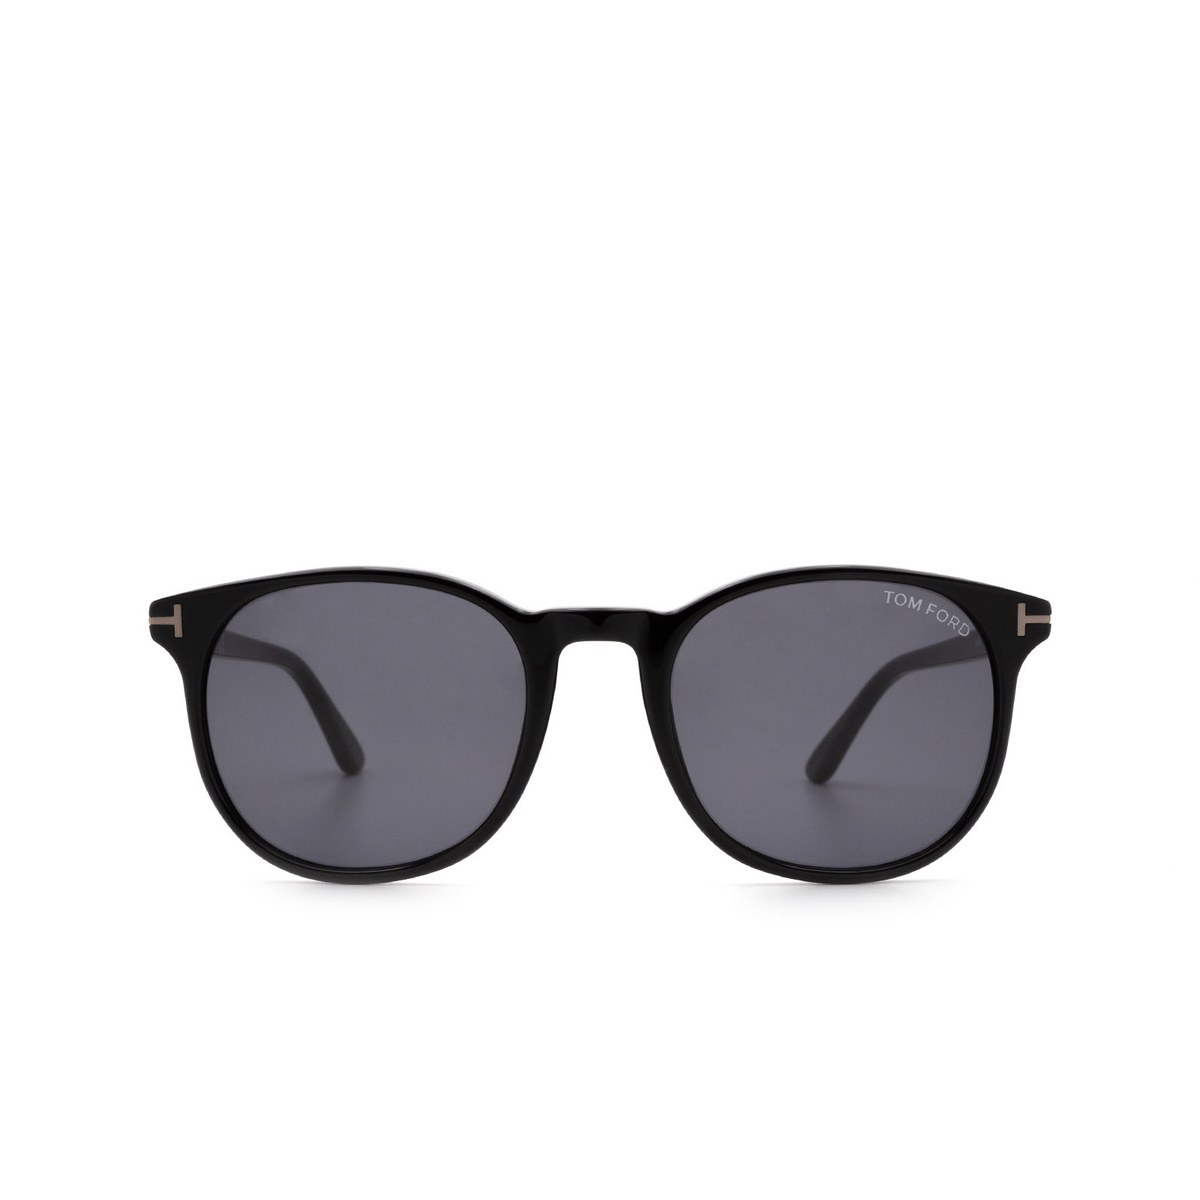 Tom Ford® Round Sunglasses: Ansel FT0858-N color Shiny Black 01A.